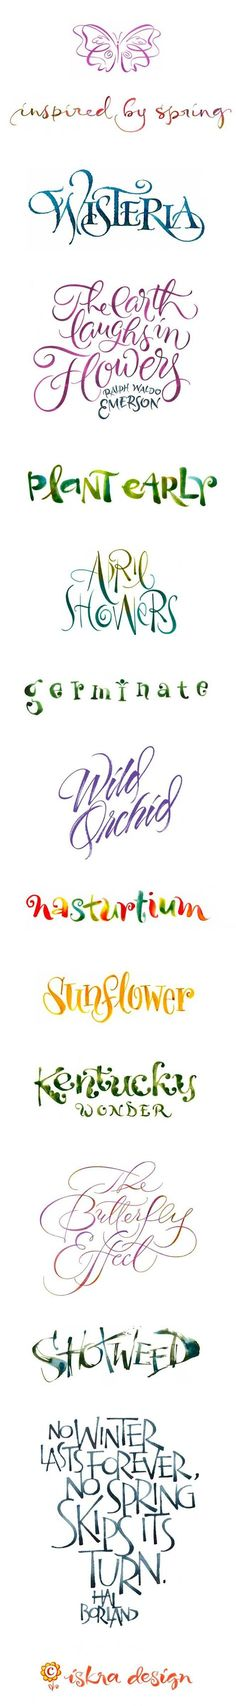 Calligraphy-And-Lettering-Design-in-Watercolor